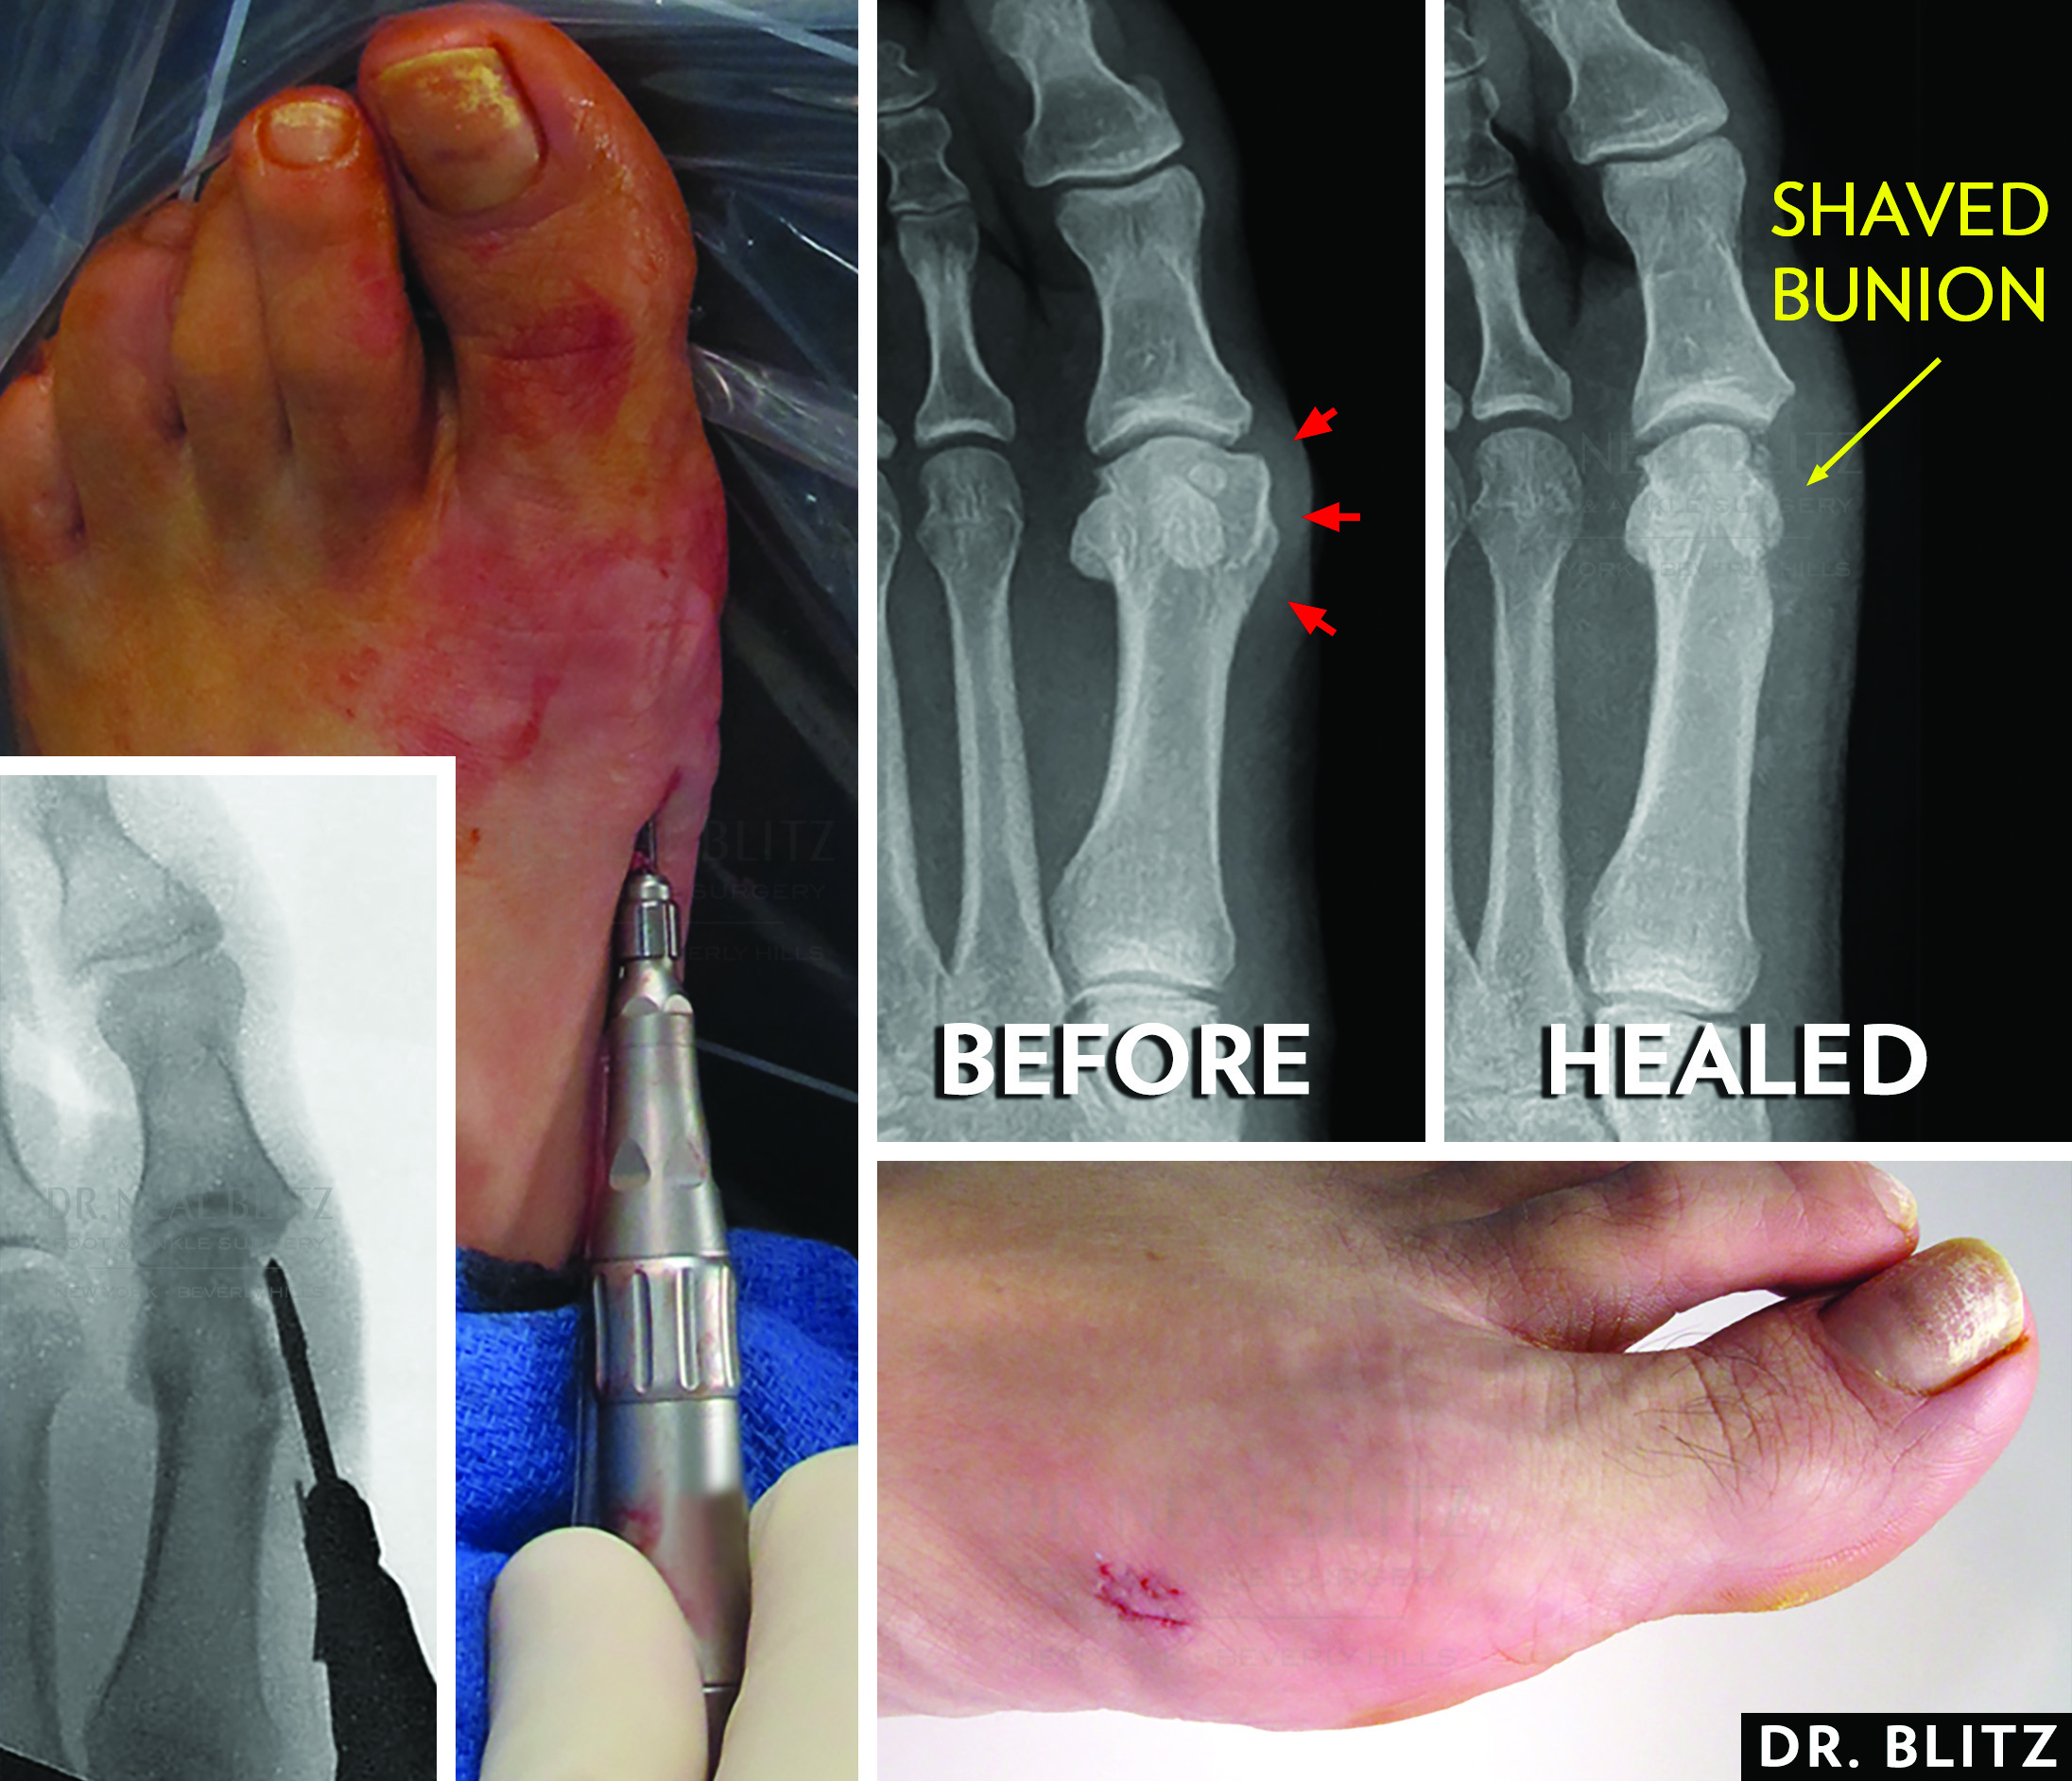 Here one can see shaving of a bunion with minimally invasive techniques. Make a single small incision on the side of the foot and use a high speed bur to shave the bunion under a live intraoperative X-ray.